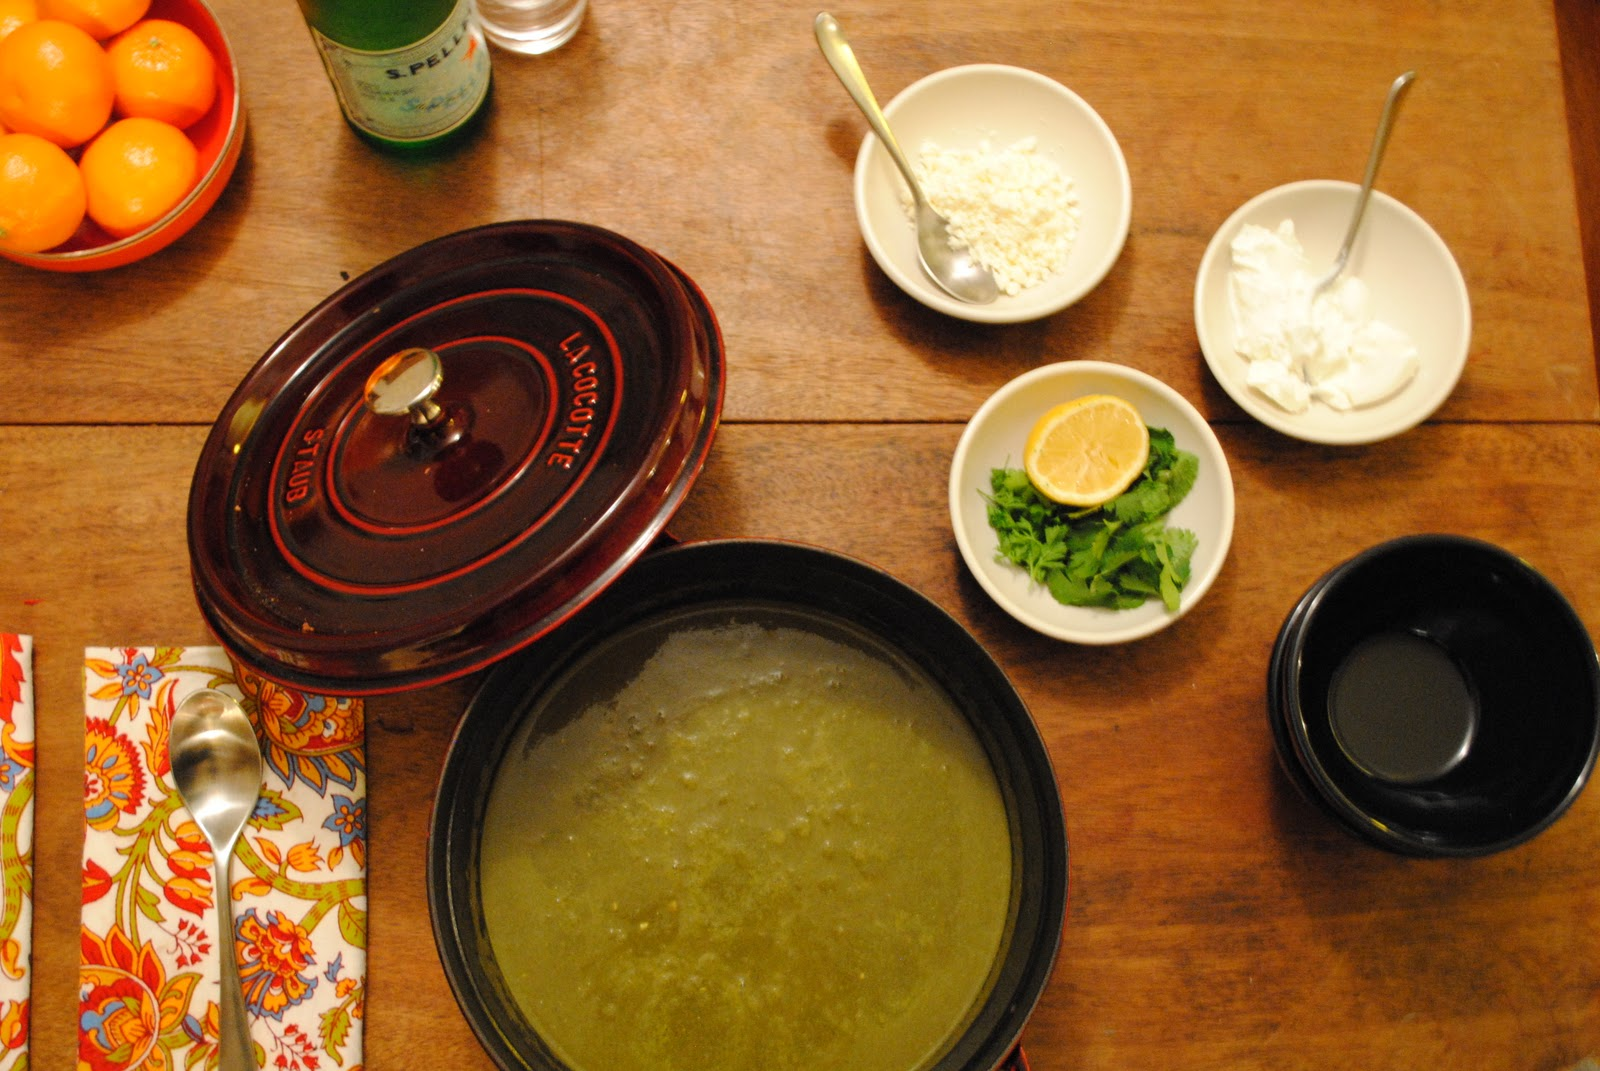 Poetic Appetite: Herb, Chard, and Feta Soup (And an Epiphany)